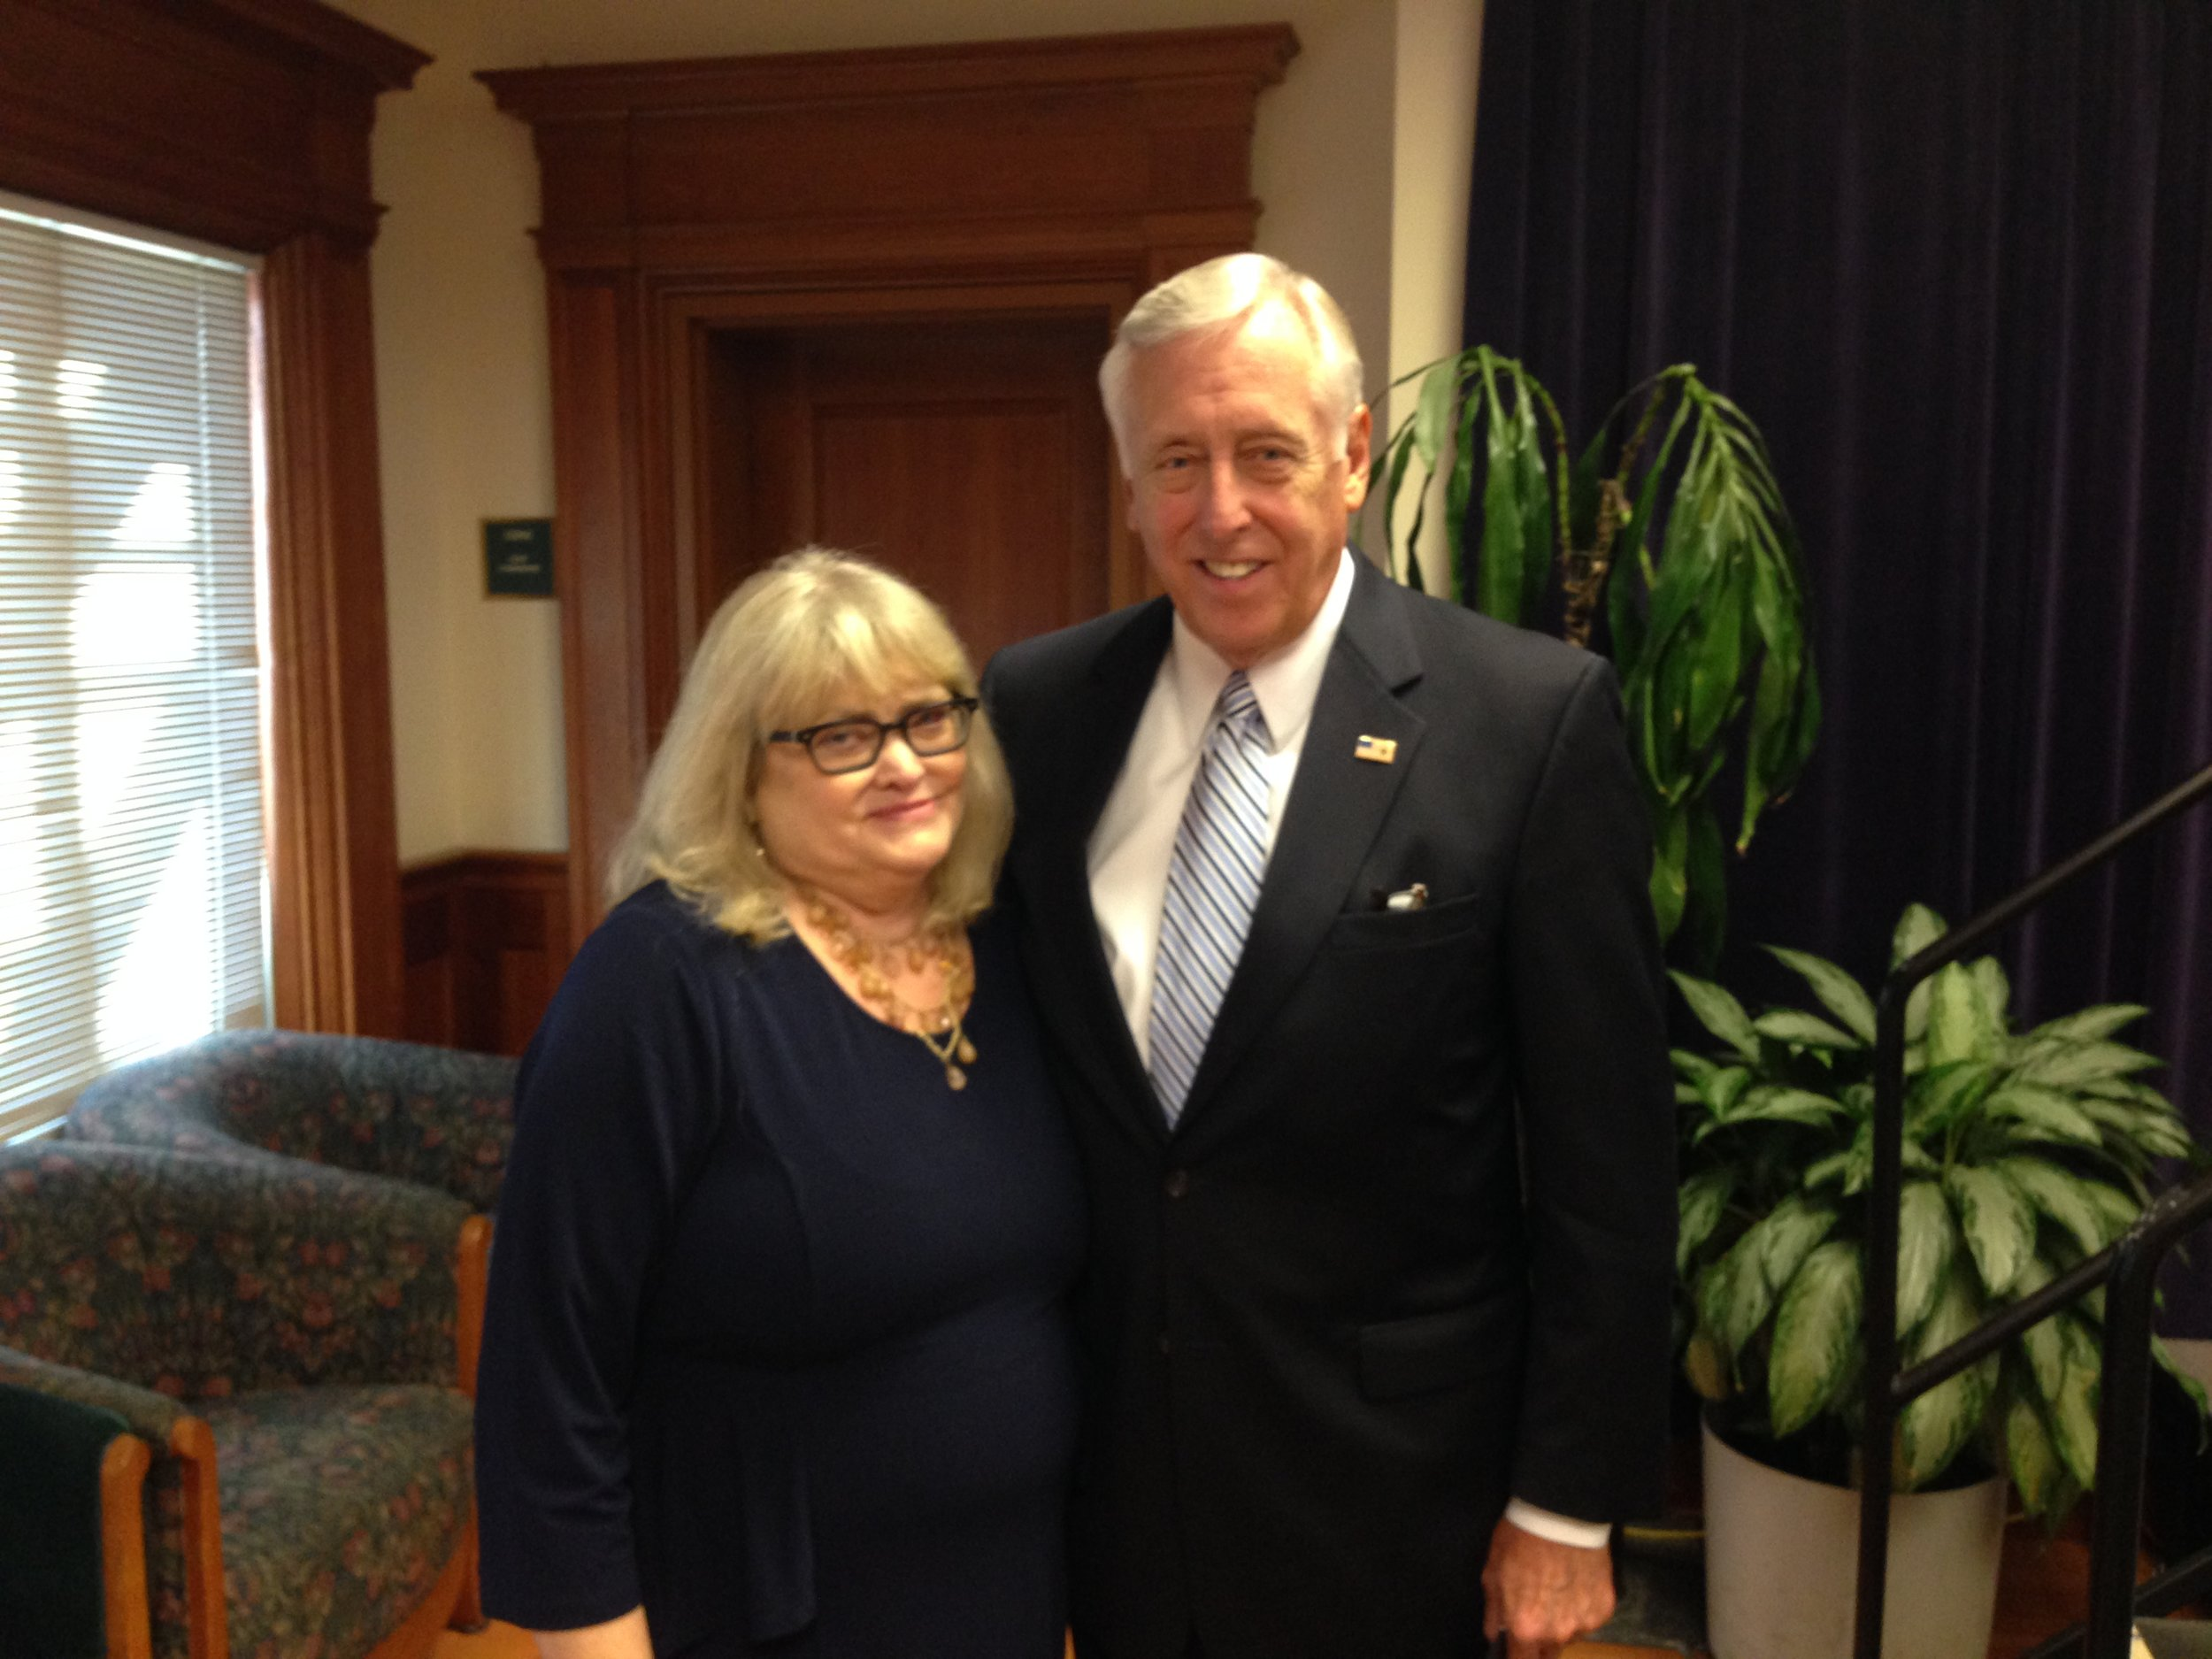 Cyndy with House Majority Leader, Representative Steny Hoyer (D-MD), during the 2013 CEF legislative conference